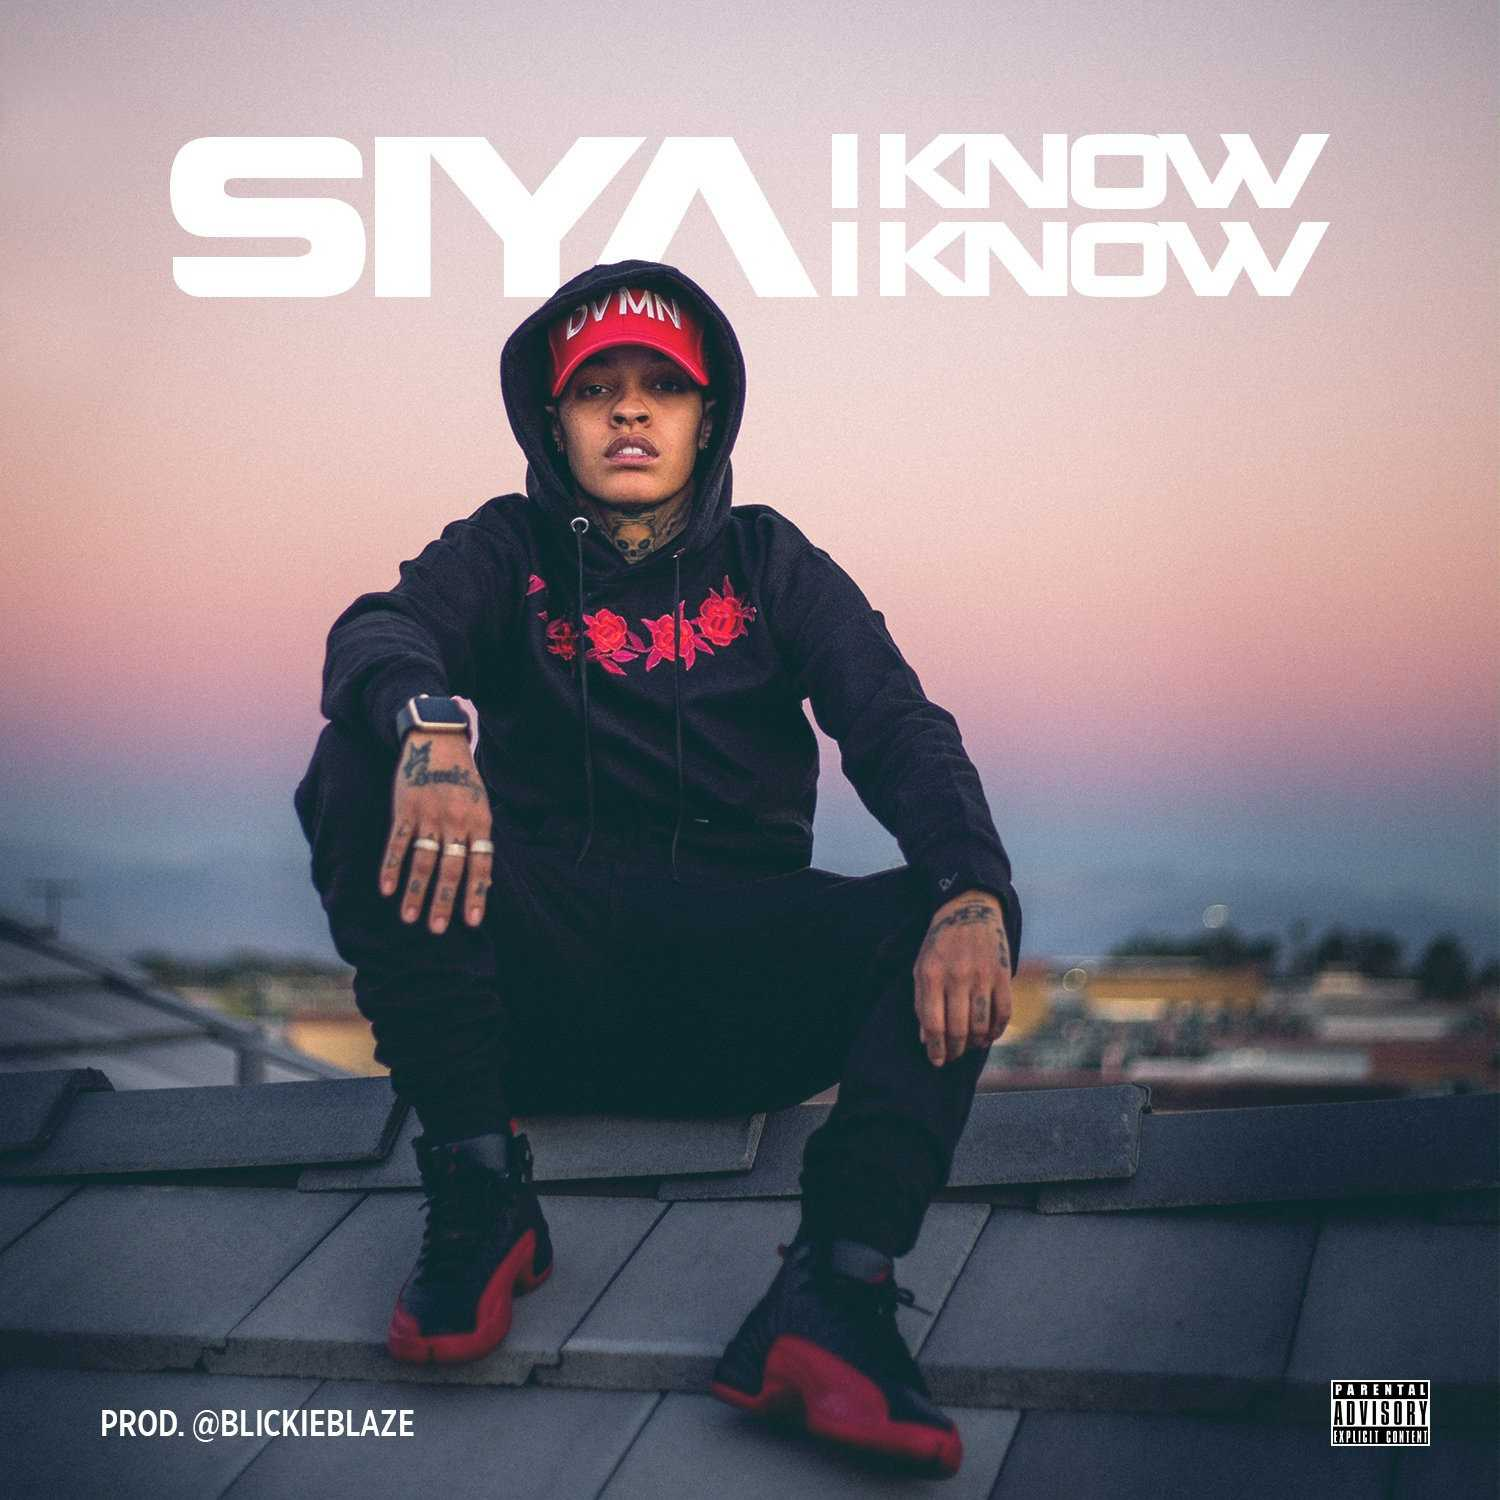 "Sisterhood of Hip-Hop Star Siya Shows A Different Side Of Herself on New Single ""I Know I Know"" [Audio]"